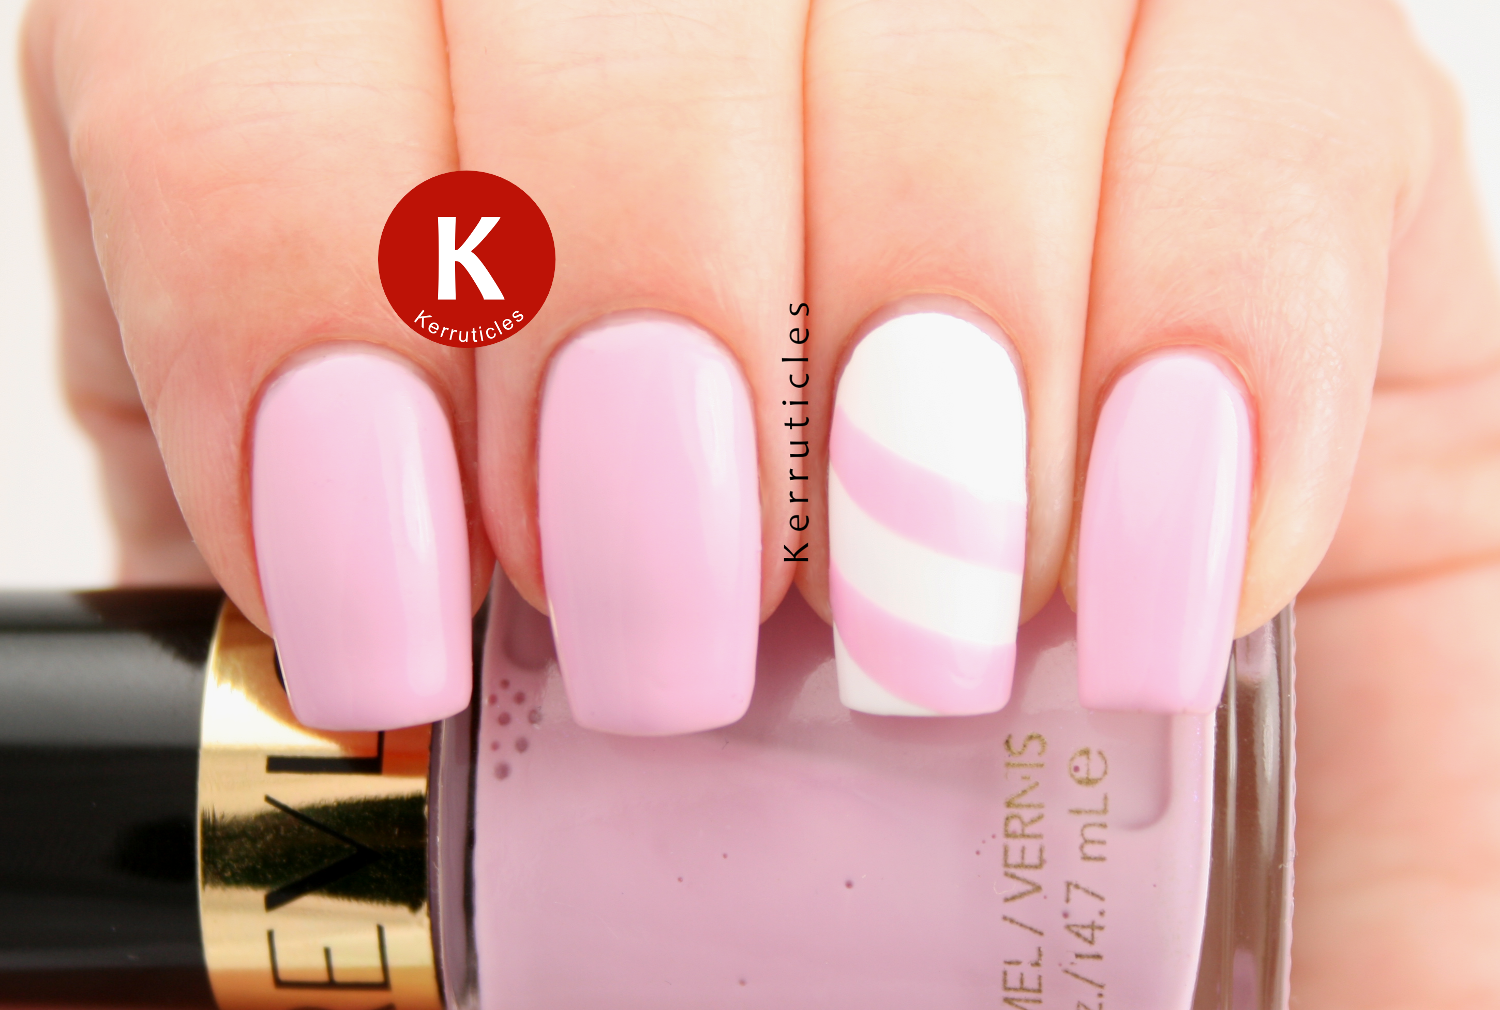 Revlon Lilac Pastelle with lined accent